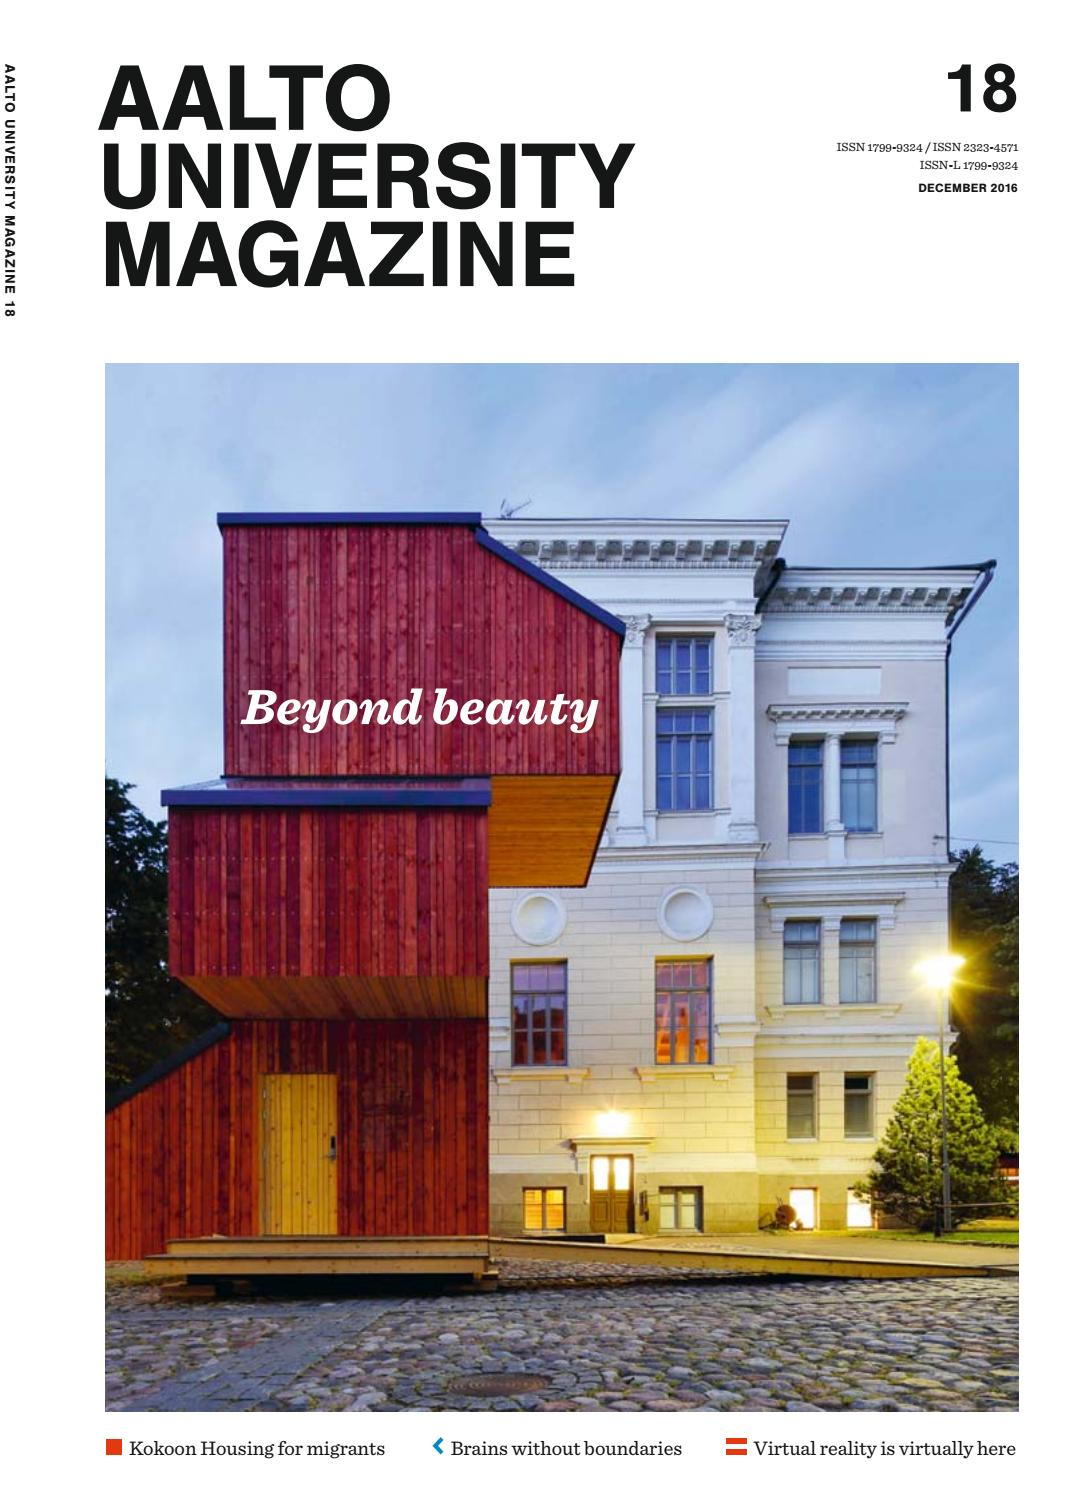 Aalto University Magazine 18 By Issuu These Pages Describe The Domestic Wiring System Installed In Spooky